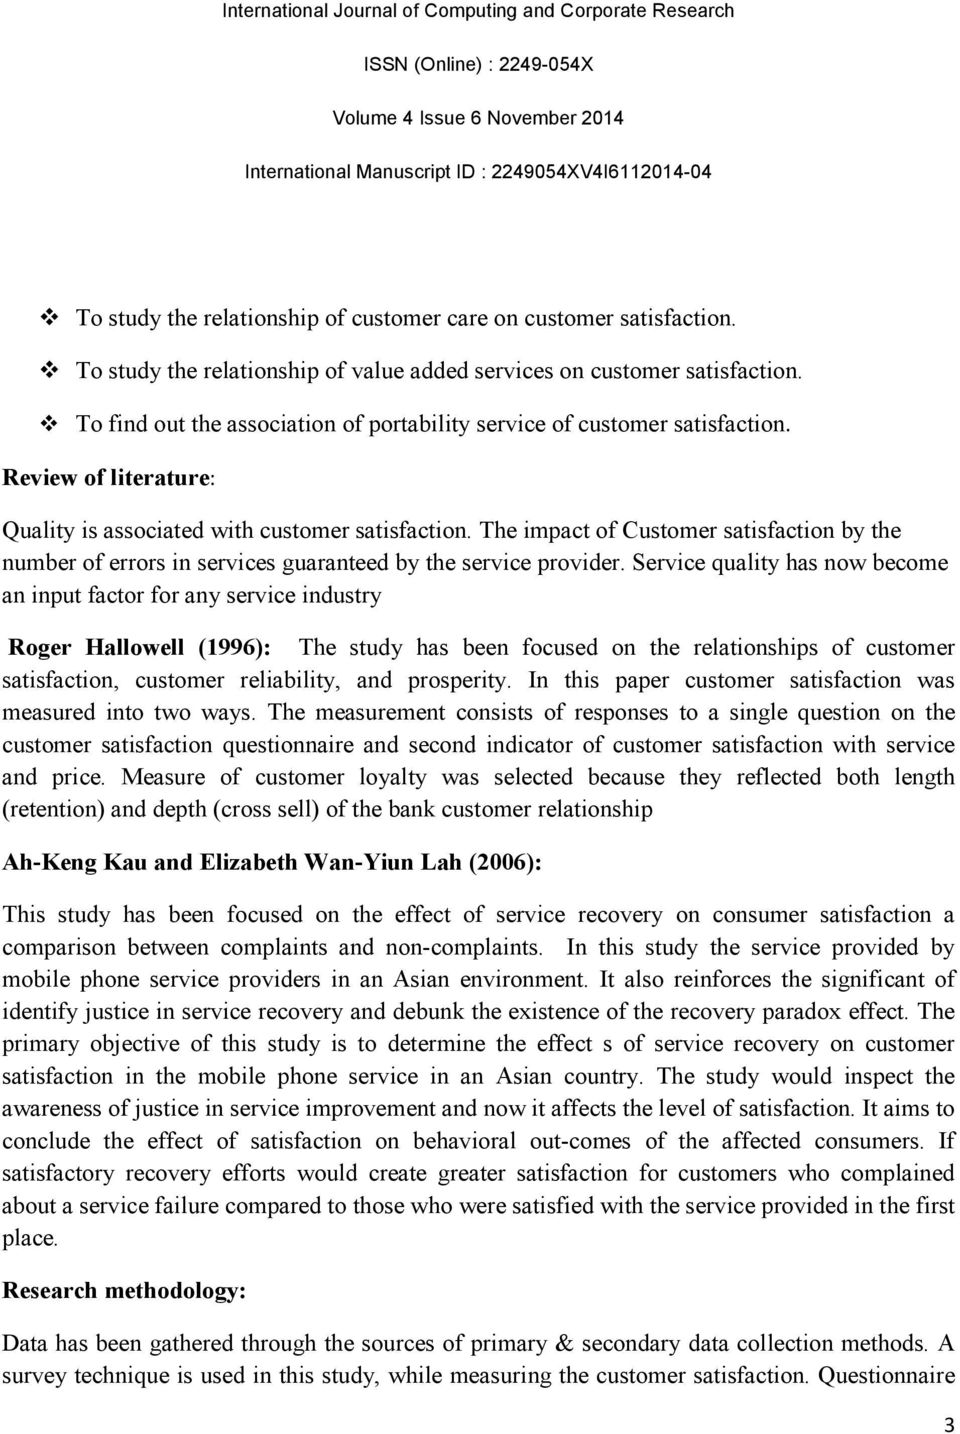 The impact of Customer satisfaction by the number of errors in services guaranteed by the service provider.